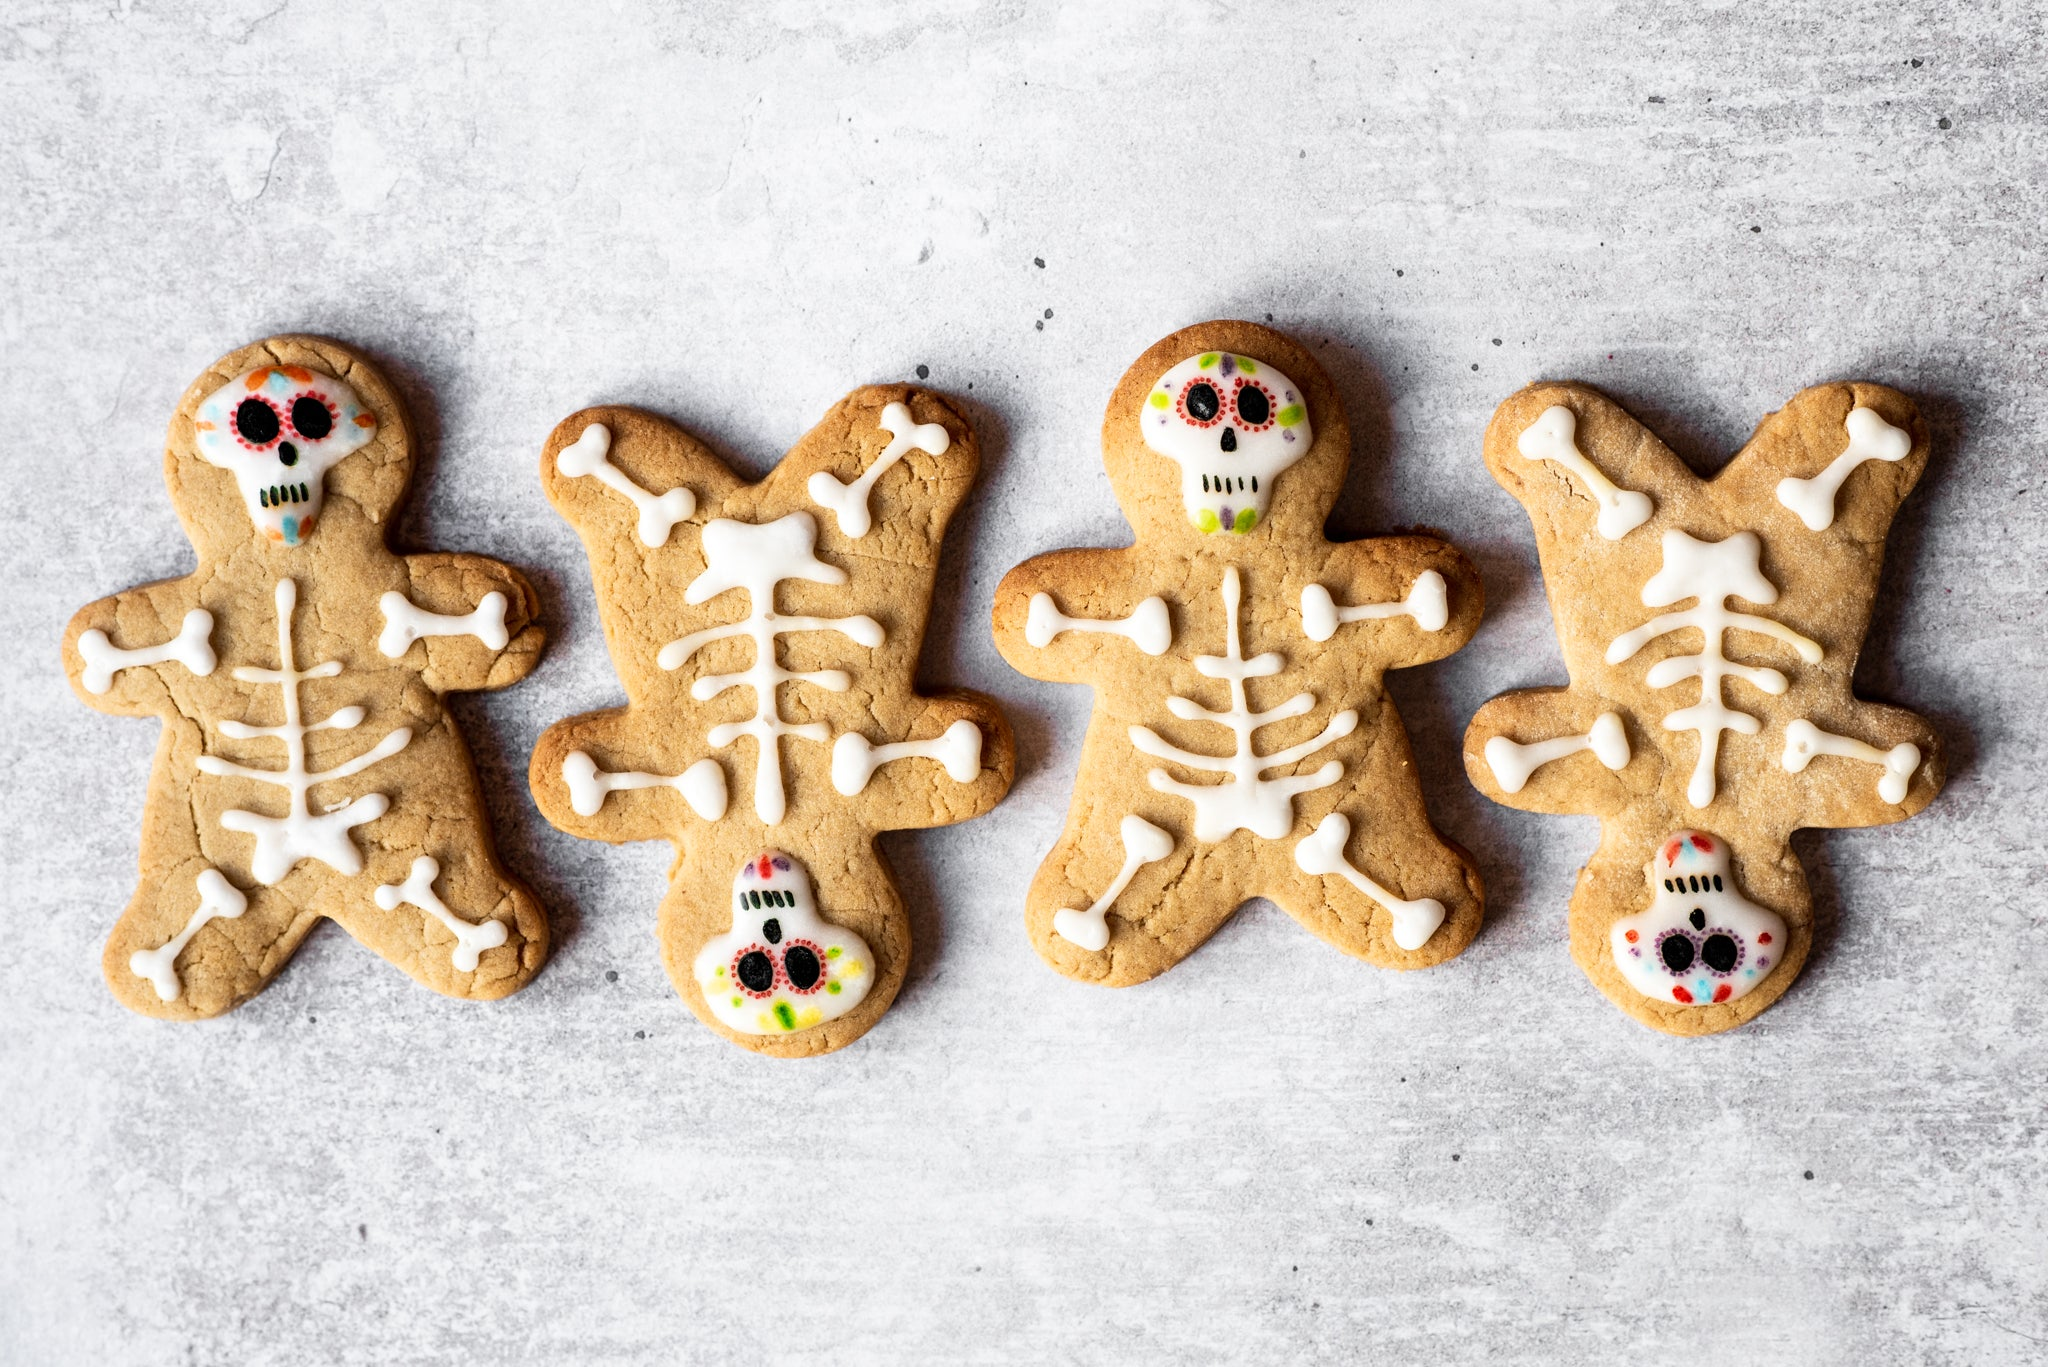 Day-Of-The-Dead-Gingerbread-Biscuits-WEB-RES-11.jpg